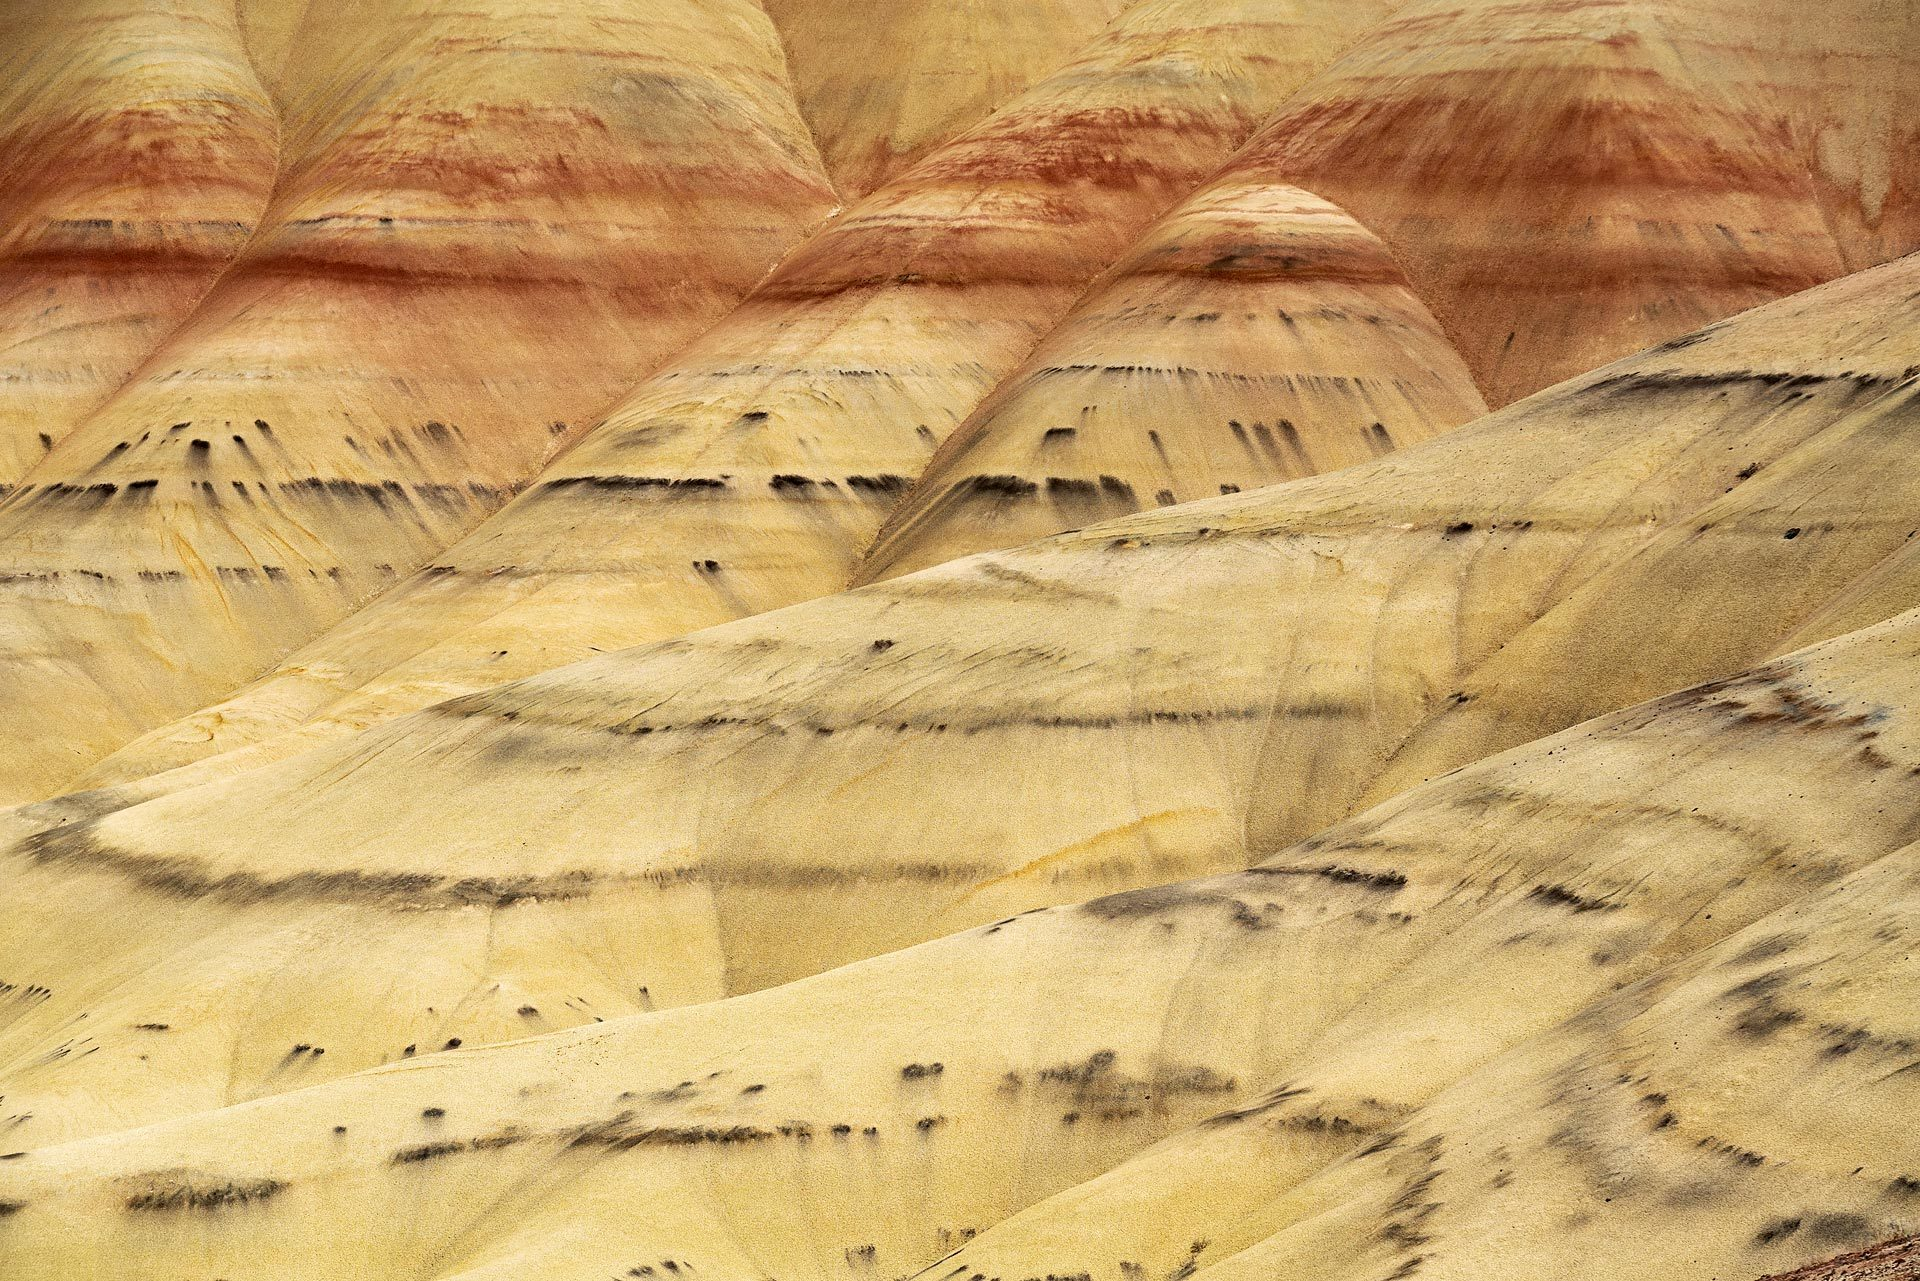 Painted Hills, Oregon. Yellow Landscape with dark spots and rust colored streaks.